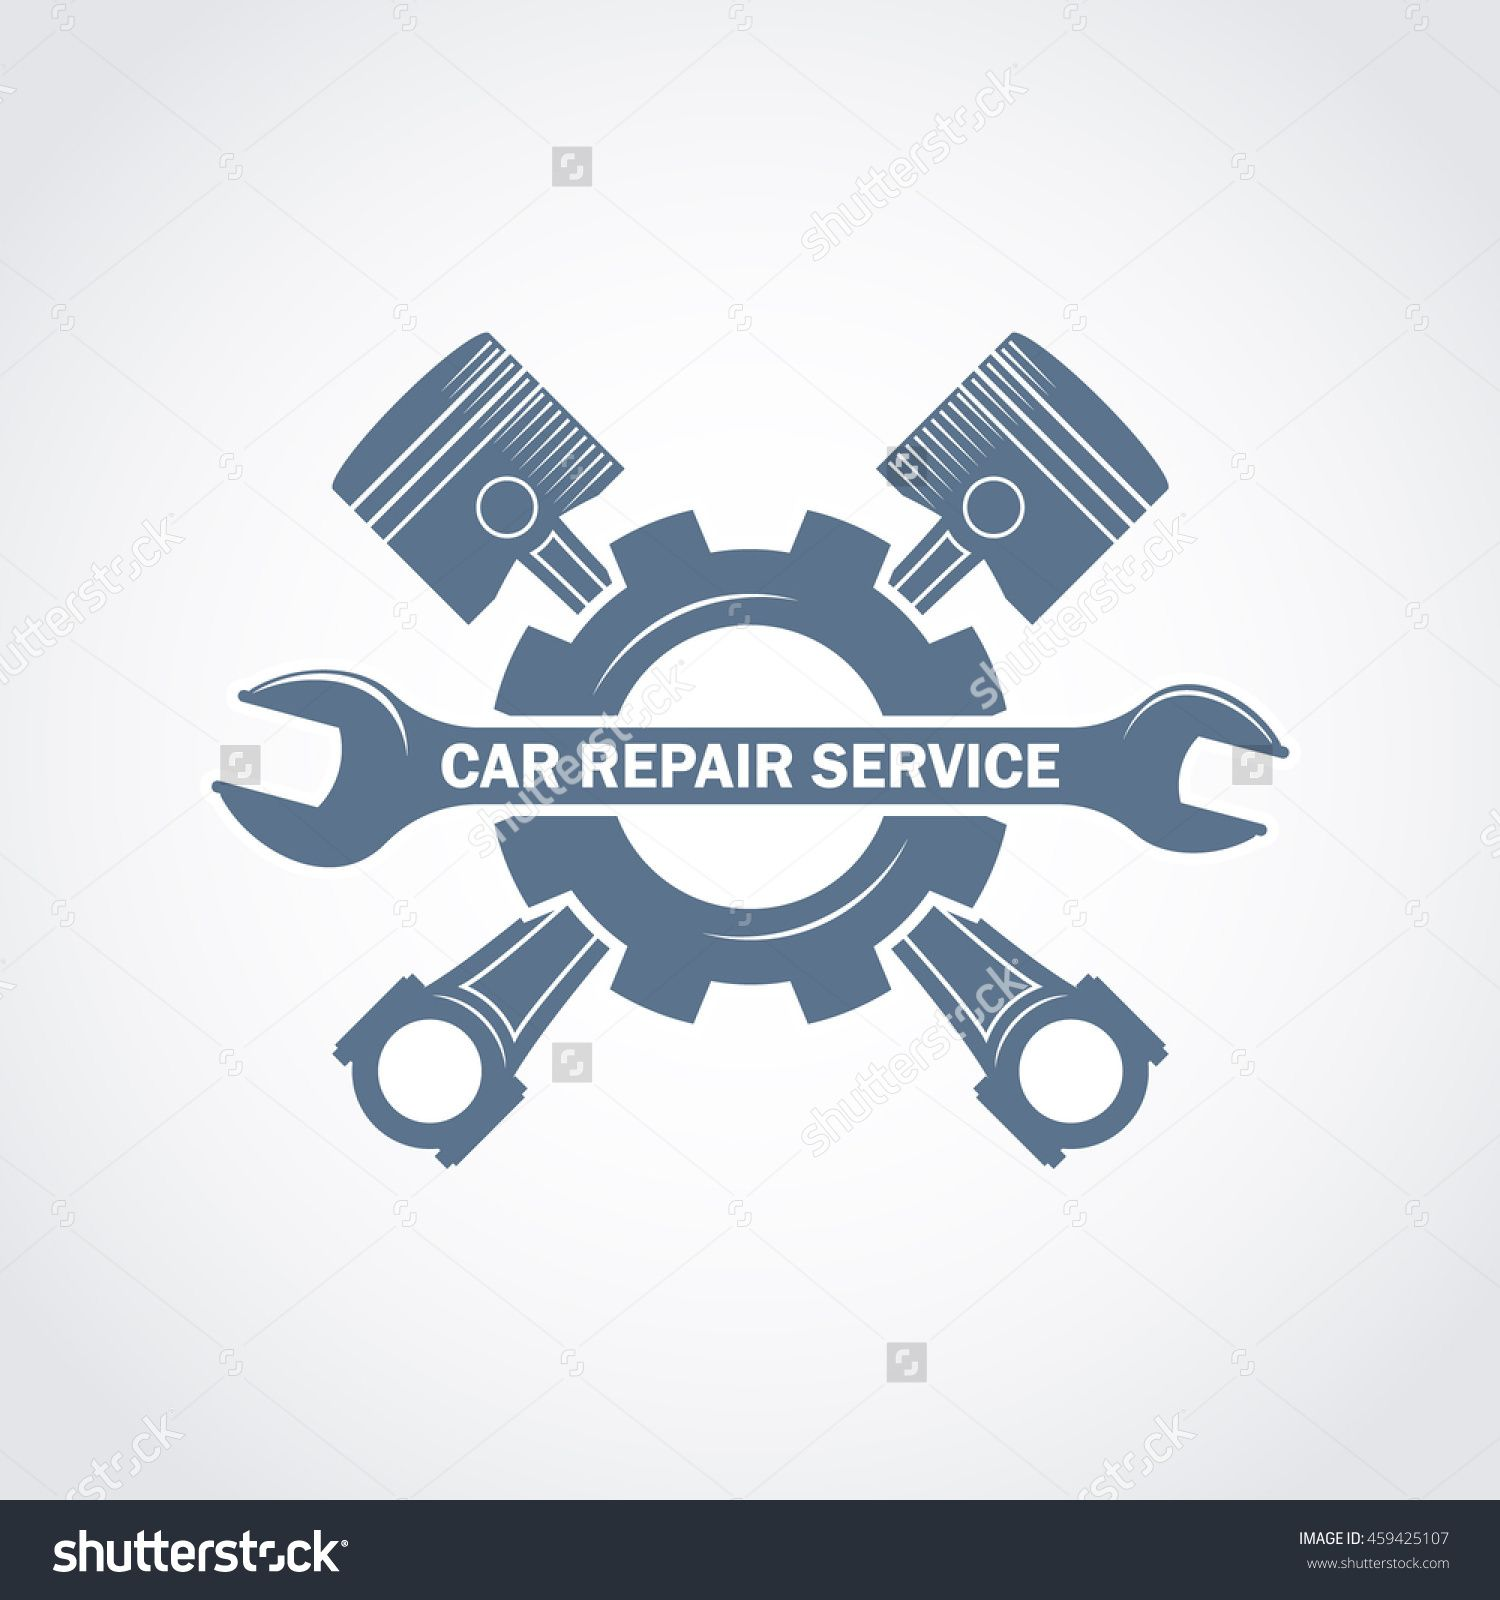 Wrench motor clipart no watermark clipart black and white download vector monochrome car service logo in retro style with a ... clipart black and white download